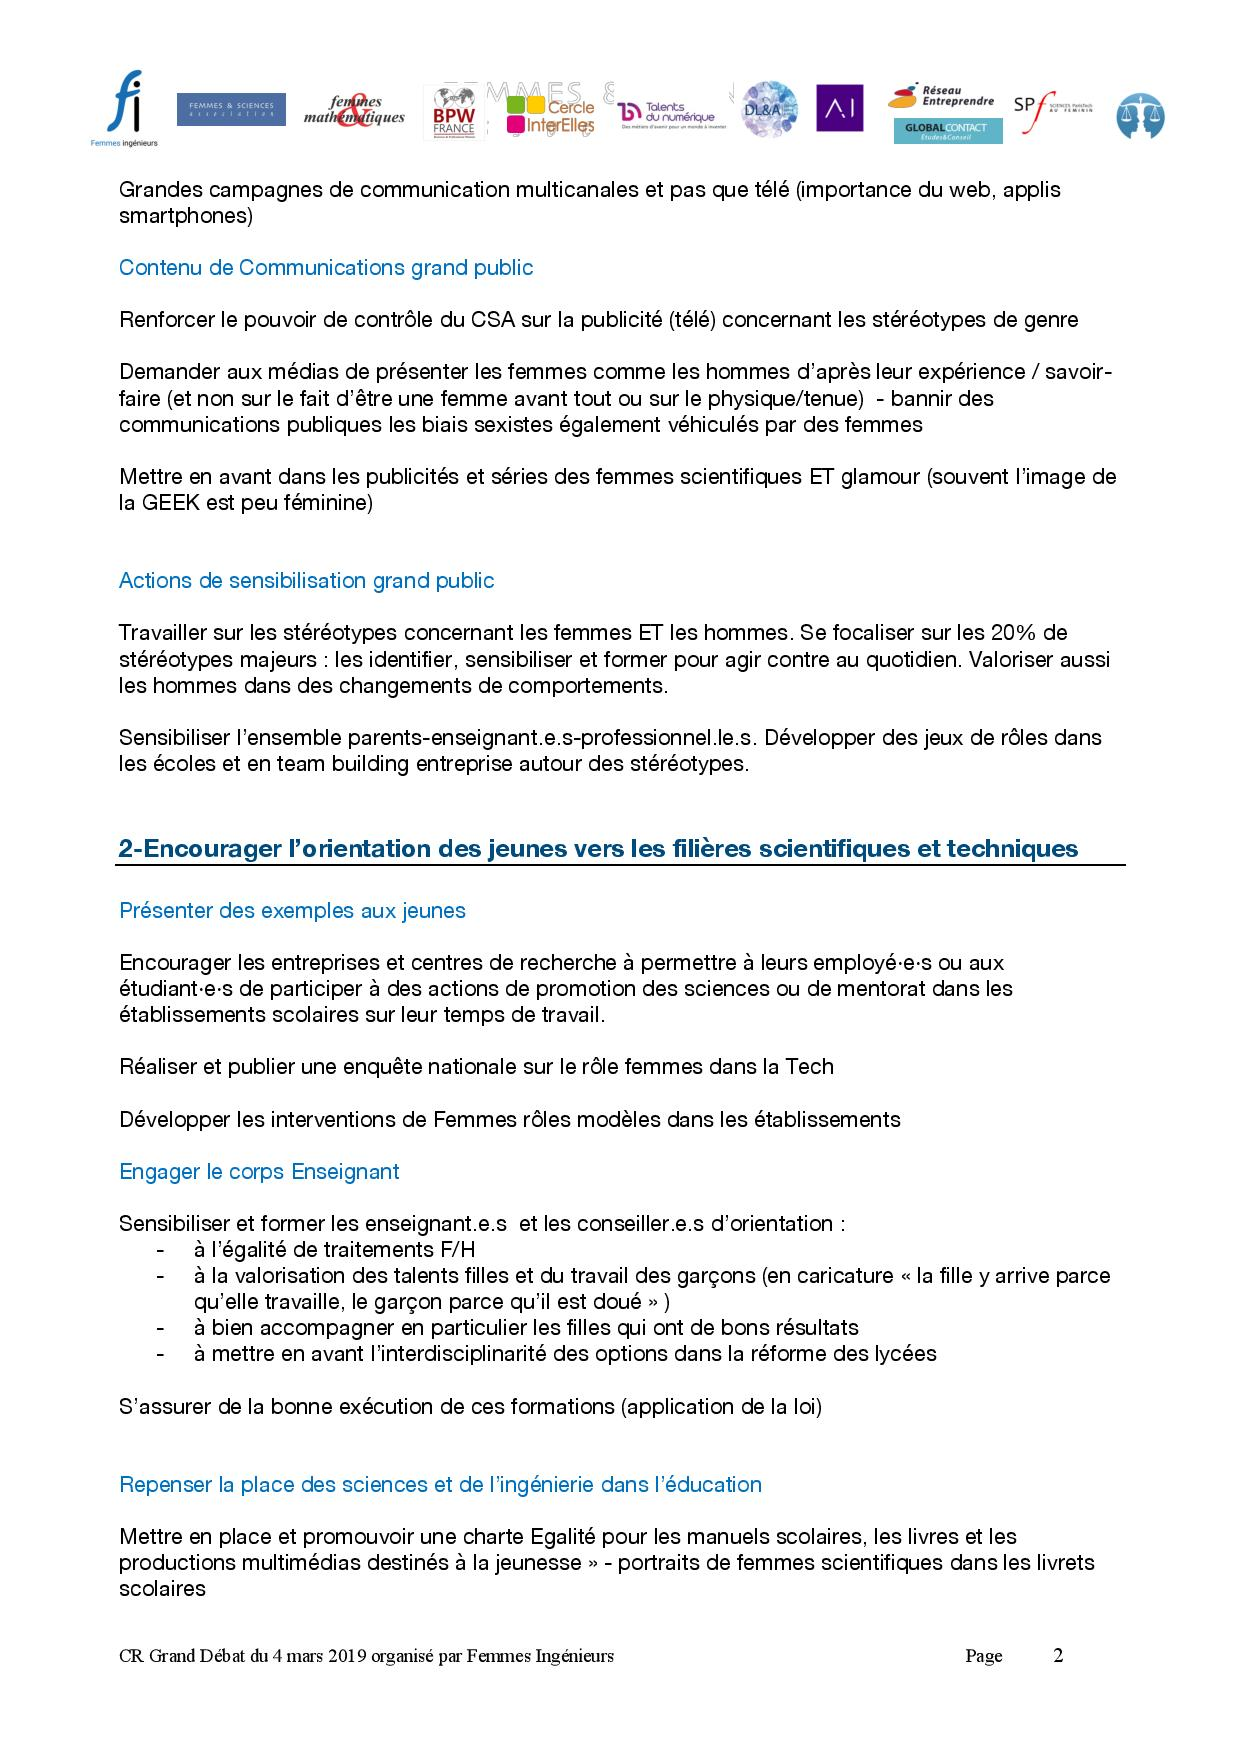 20190403 FI Grand Debat Propositions V3-page-002